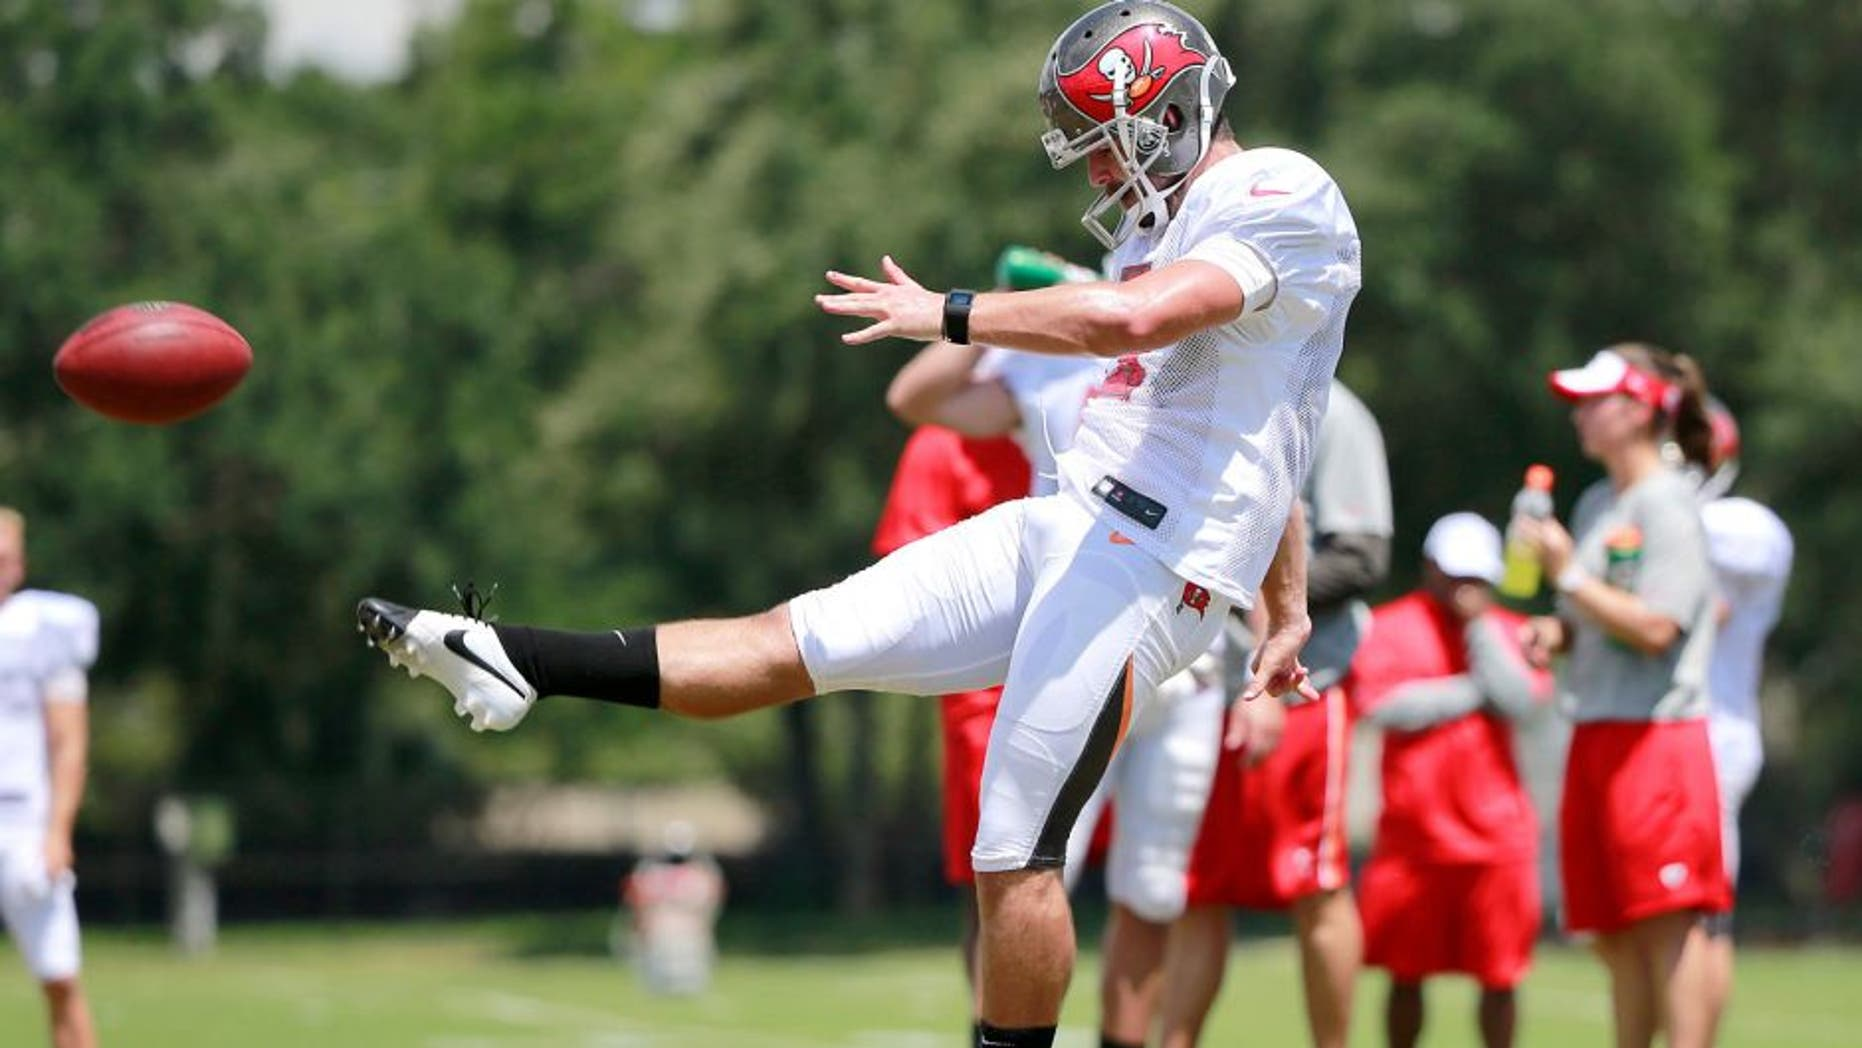 Aug 6, 2015; Tampa Bay, FL, USA; Tampa Bay Buccaneers punter Spencer Lanning (5) works out during training camp at One Buc Place. Mandatory Credit: Kim Klement-USA TODAY Sports